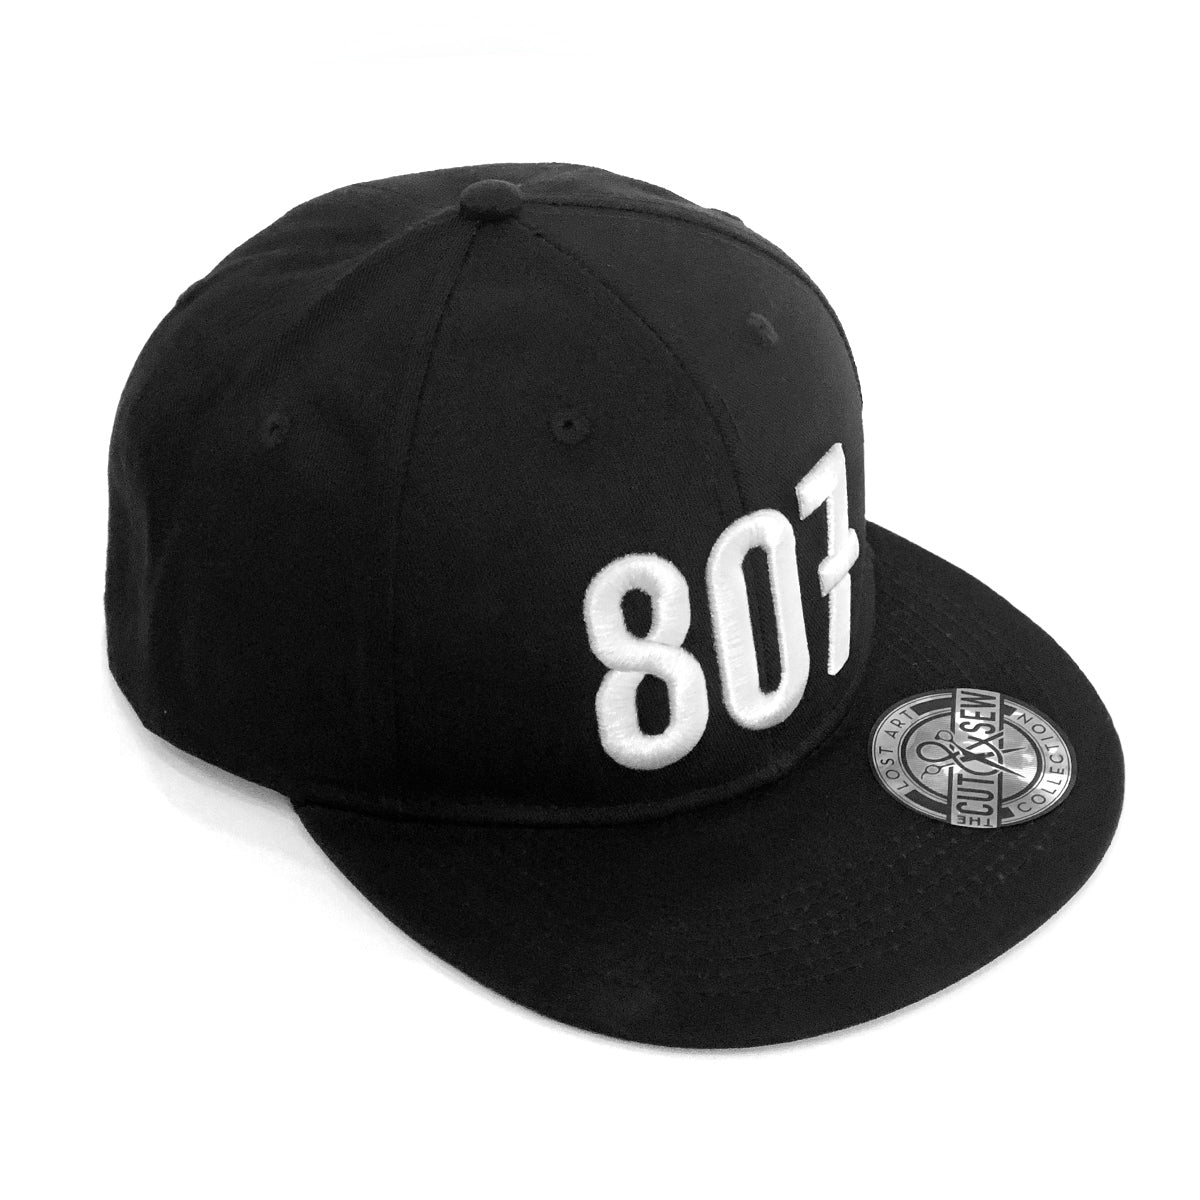 Lost Art Canada - white 807 black snapback hat front view